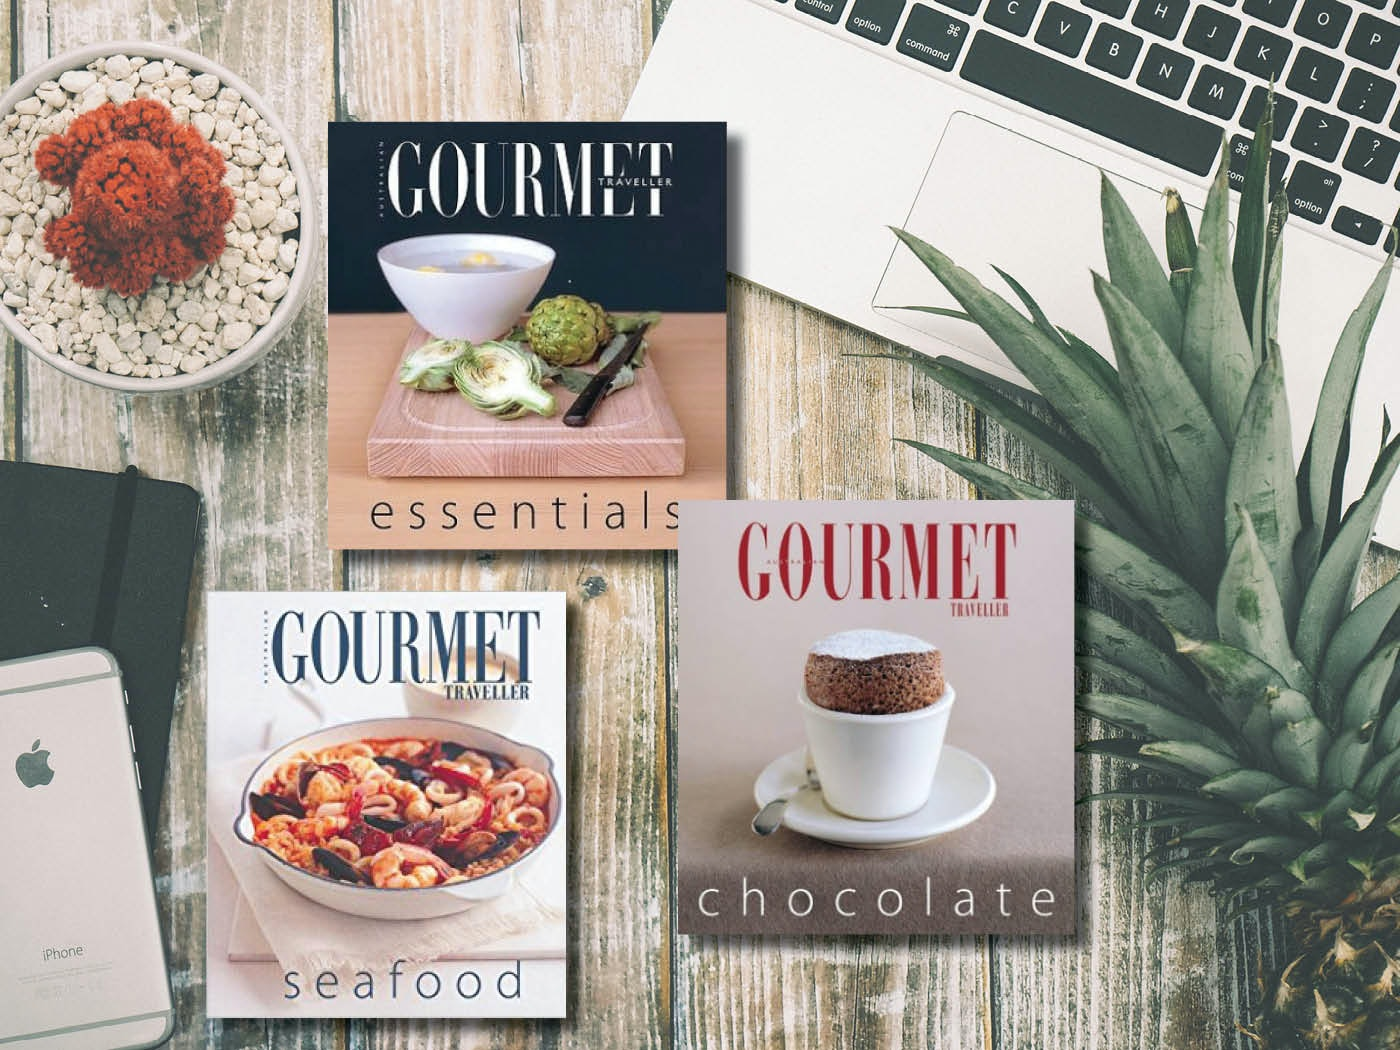 Aus Gourmet traveller cook books sweepstakes